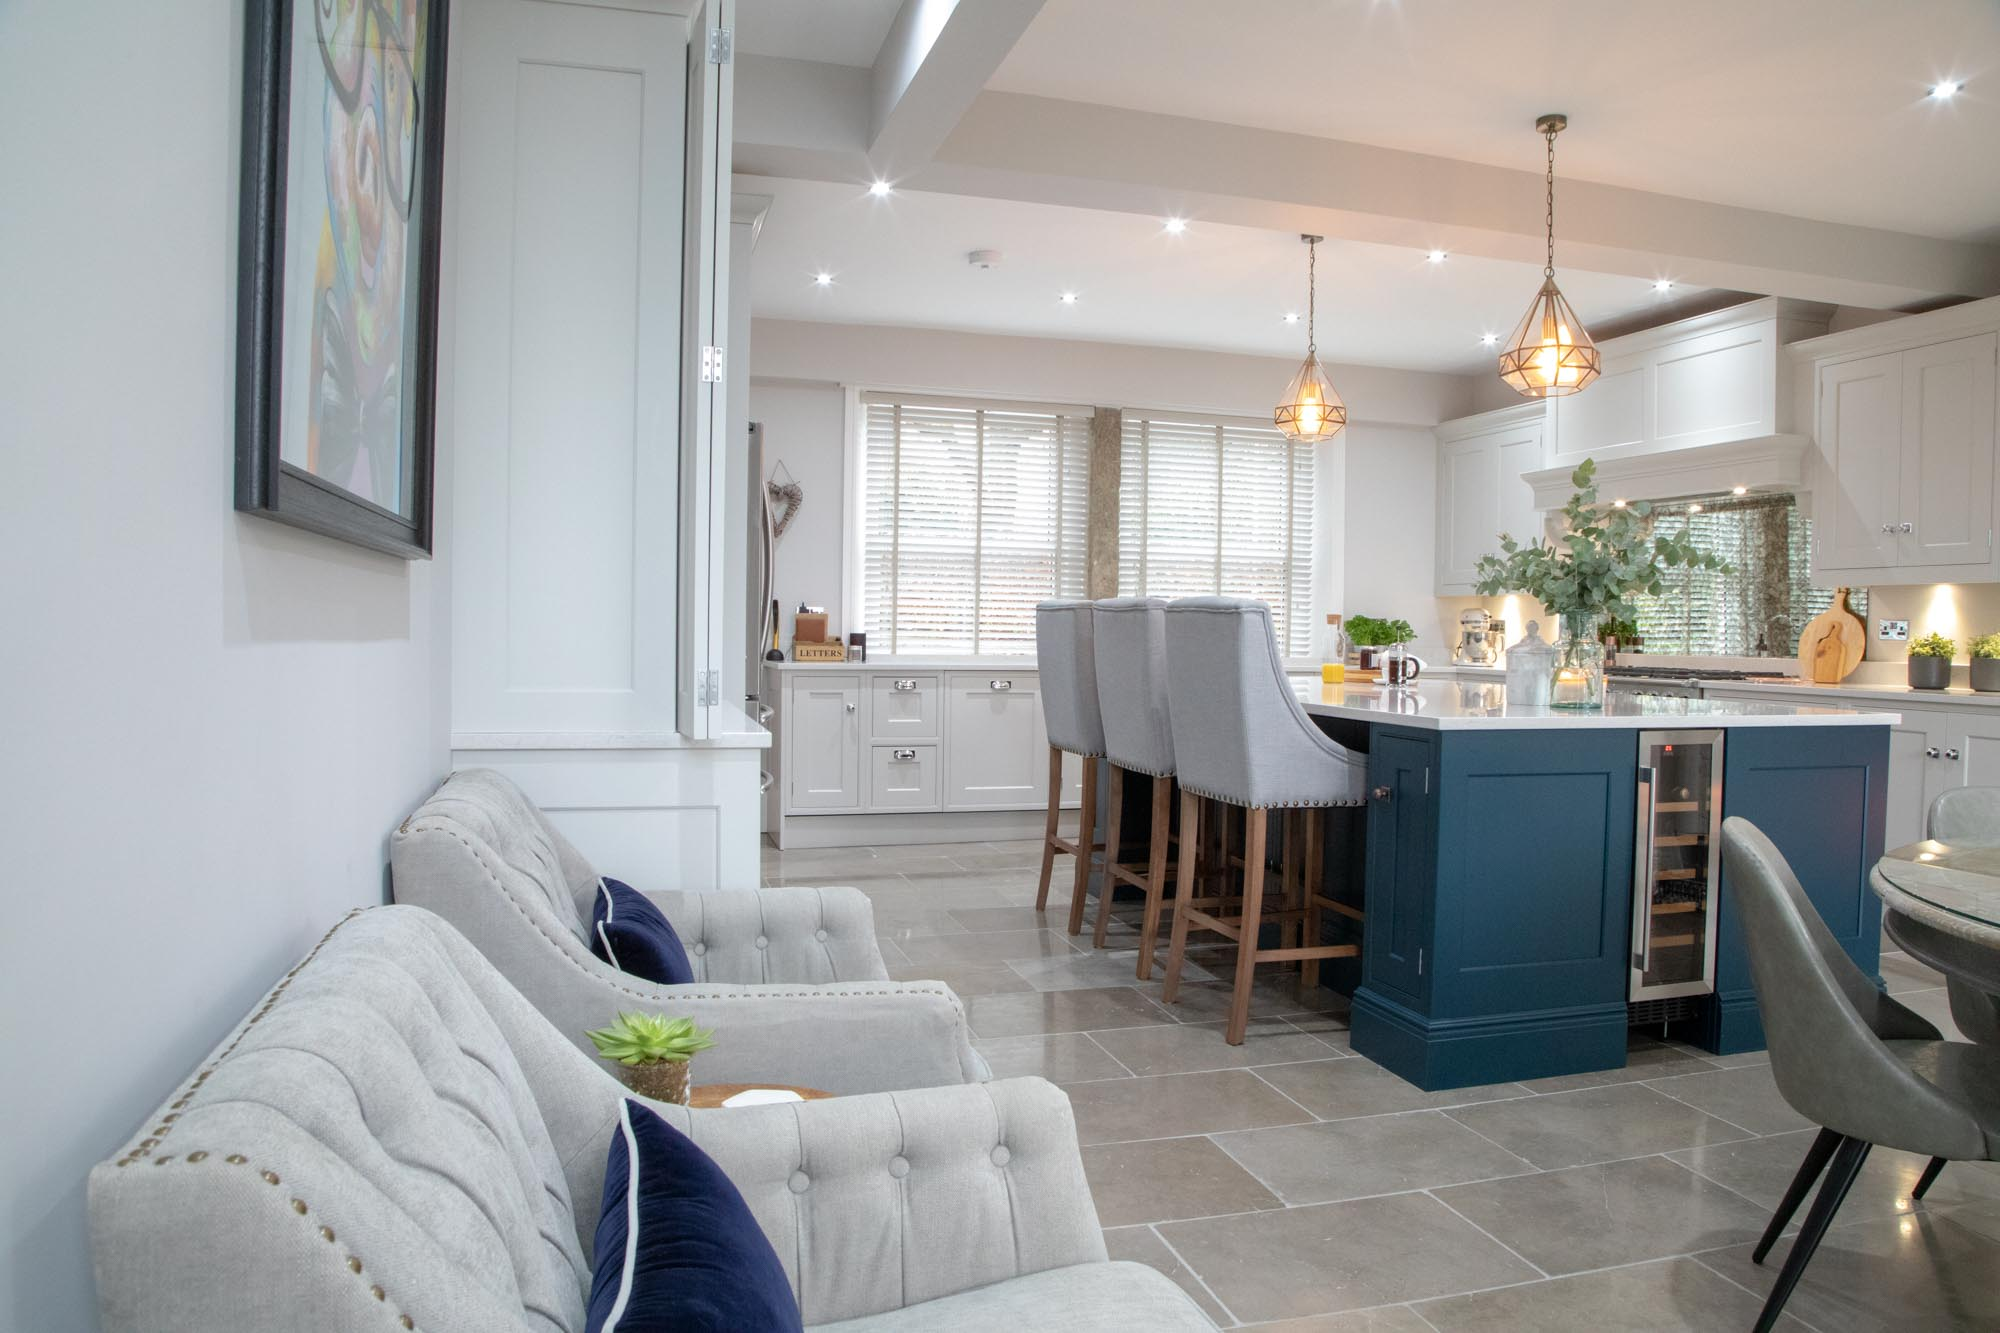 What to expect from kitchen designs in 2019 | Kitchen ...